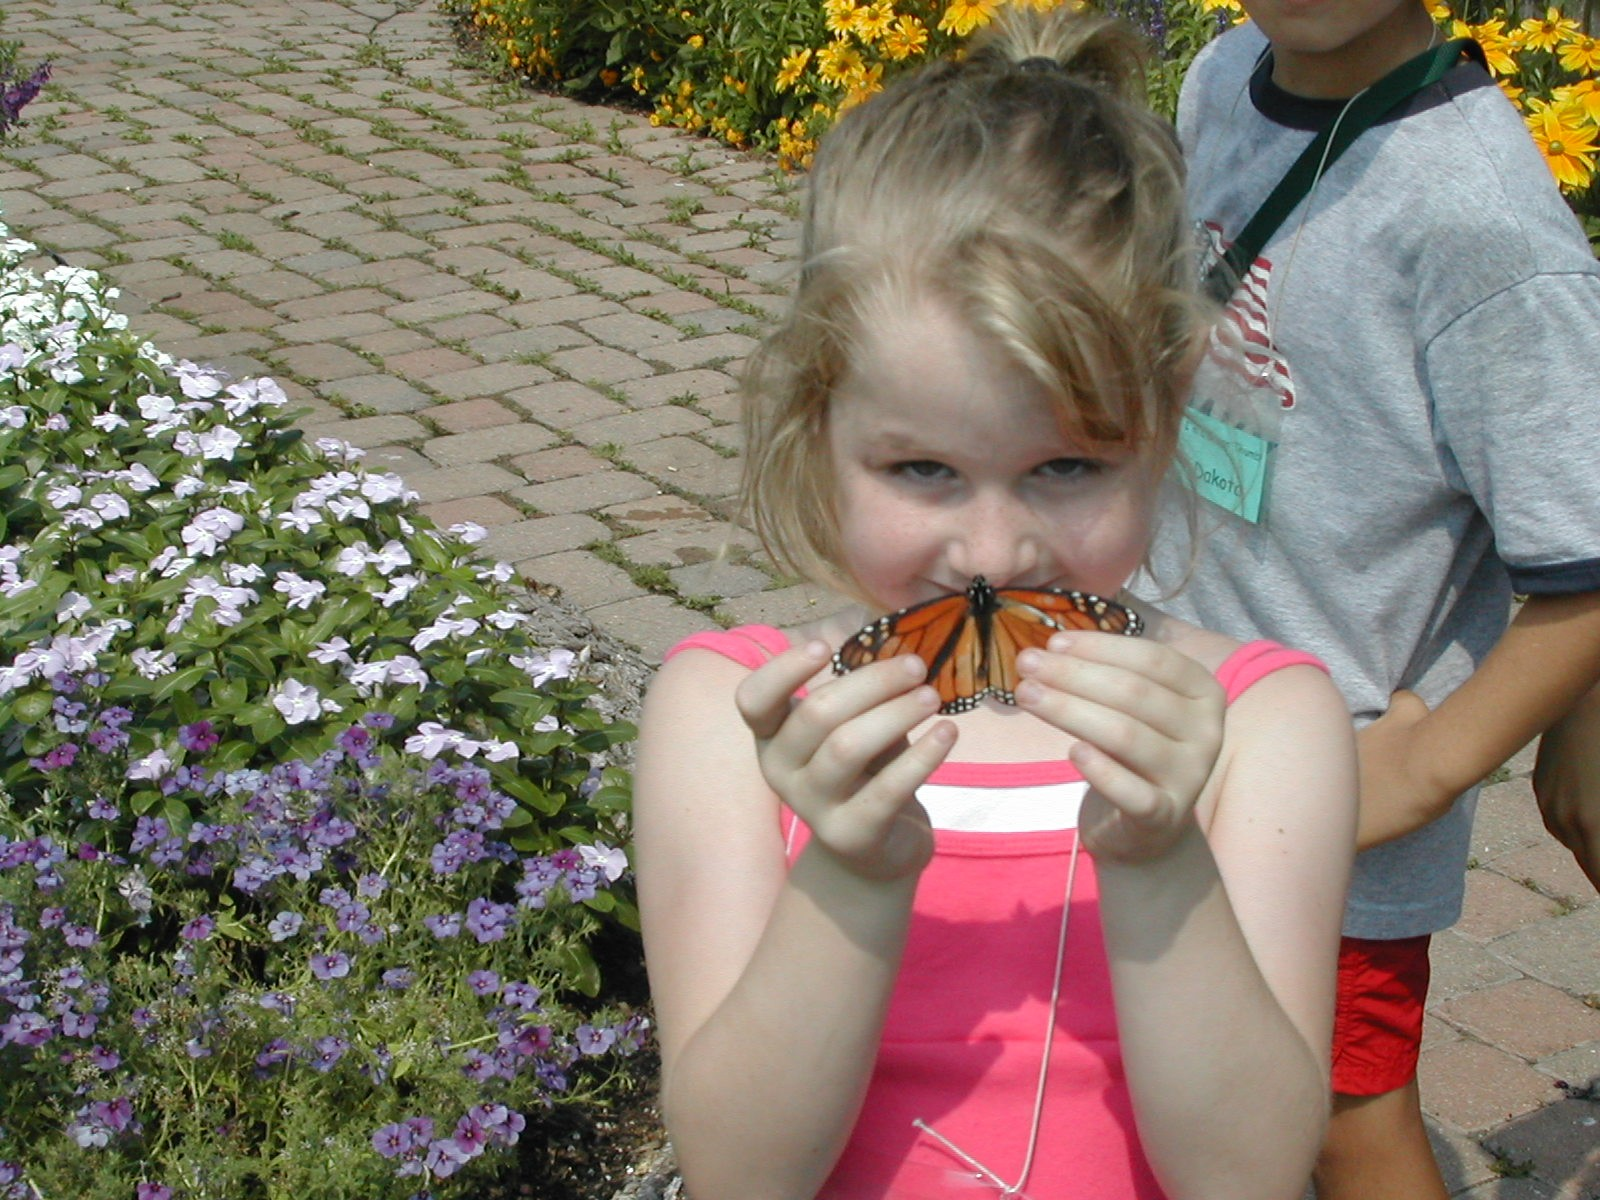 Butterflies & Blooms Exhibit